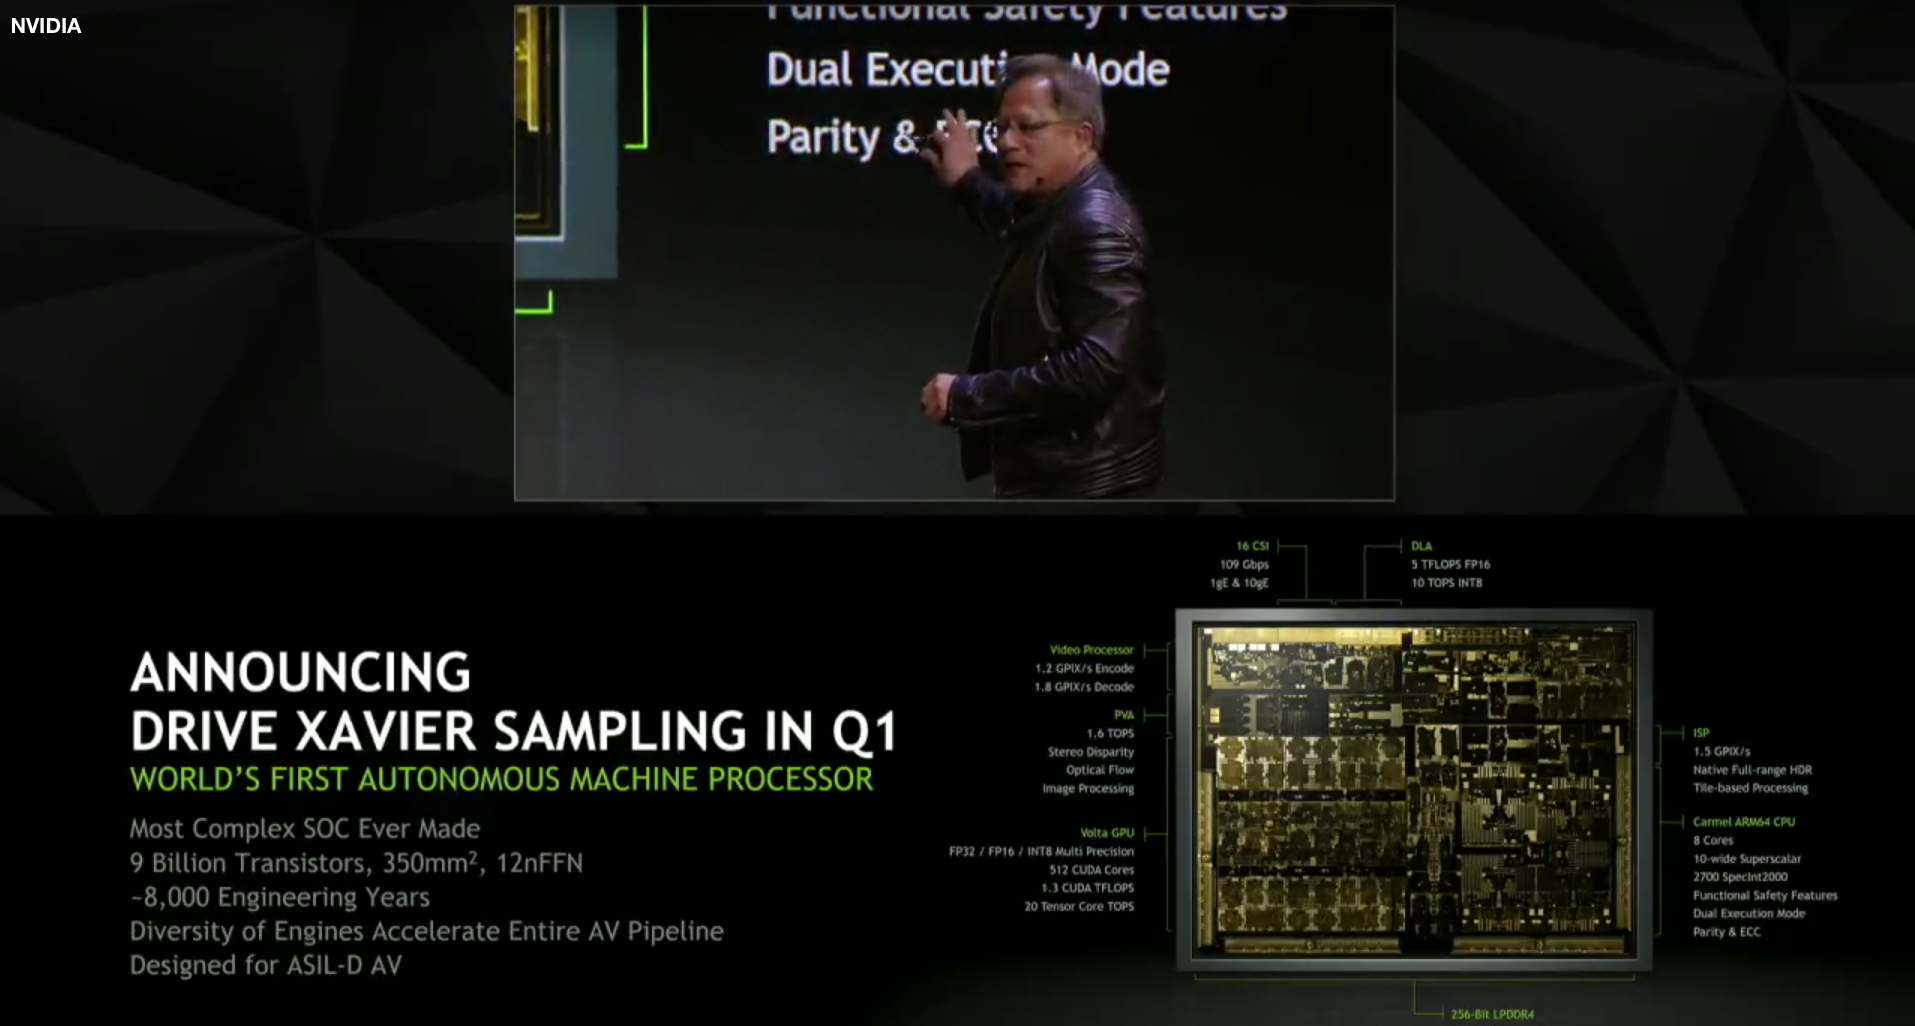 AI At The Edge: Nvidia's Robotics Opportunity - NVIDIA Corporation